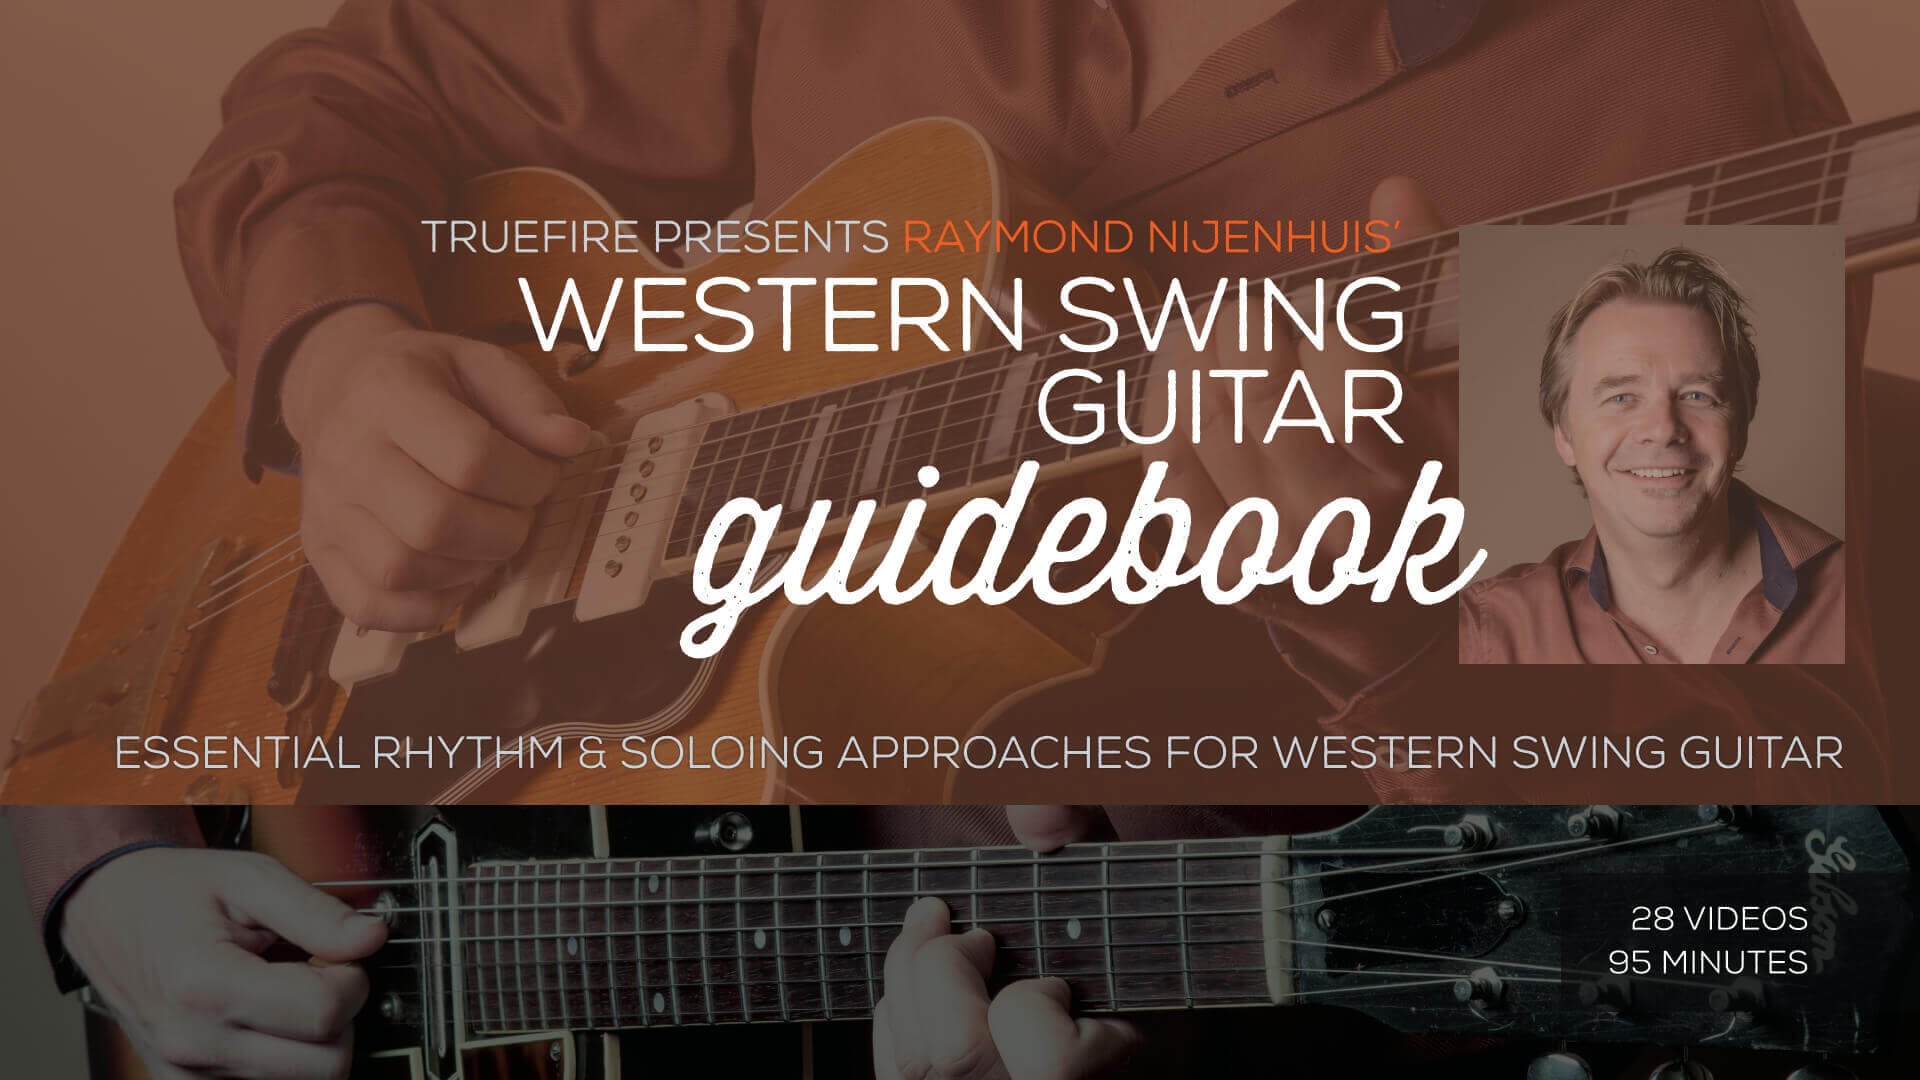 Western Swing Guitar Guidebook Ray Nijenhuis Truefire